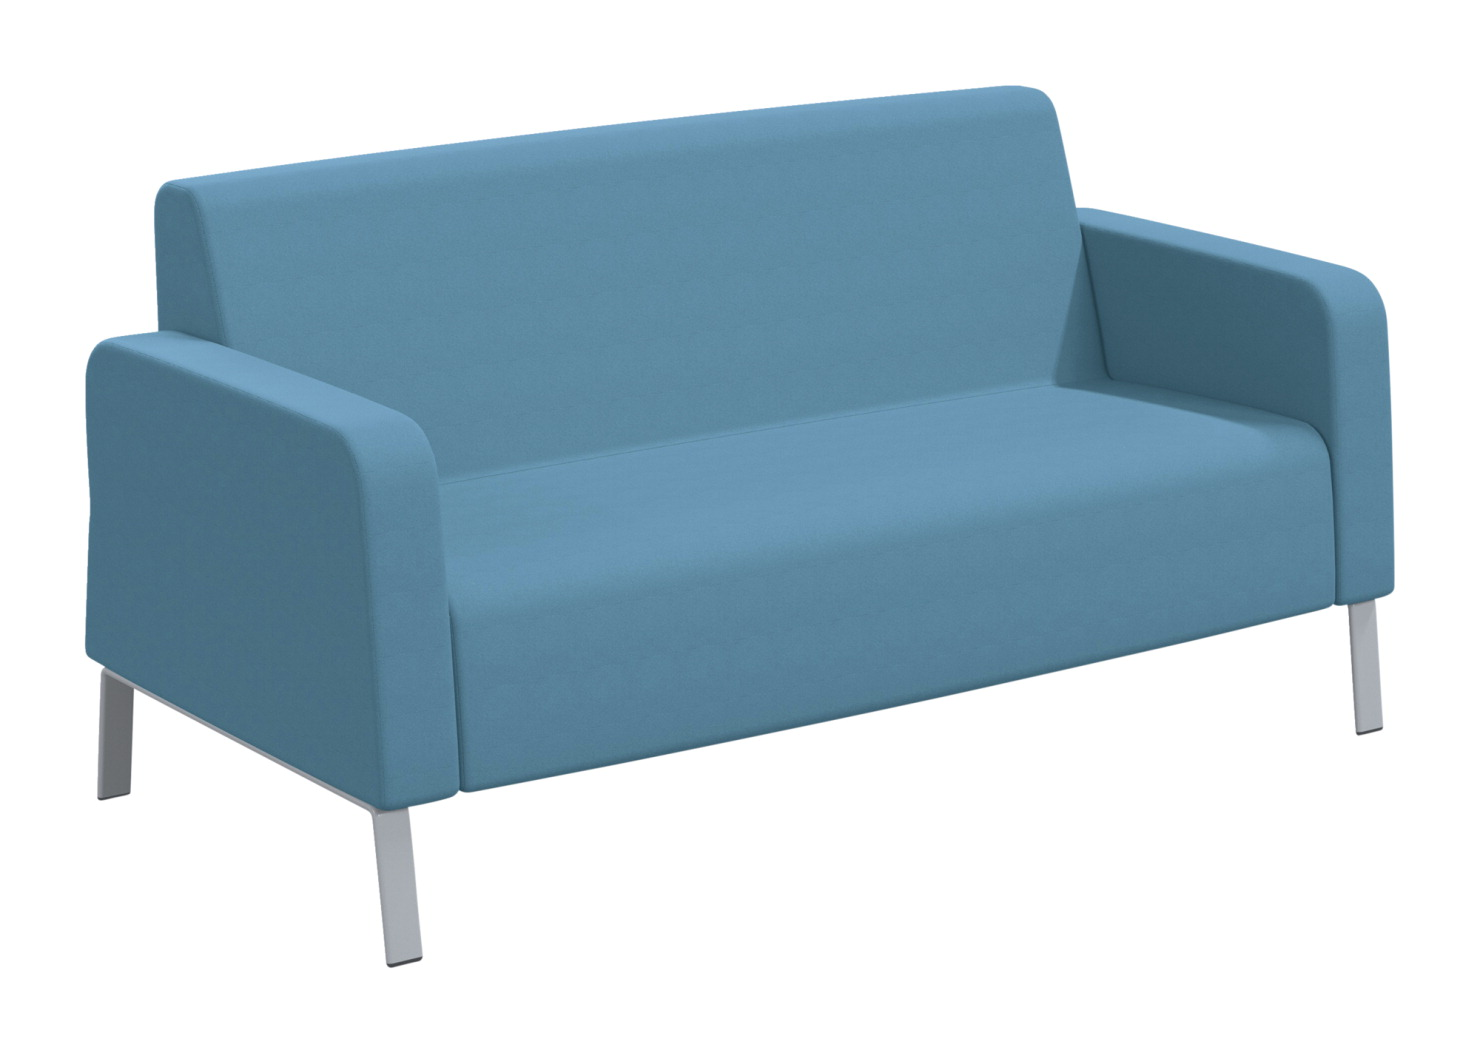 Classroom Select Soft Seating Armed Sofa, 66 x 32 x 34 Inches, Various Options